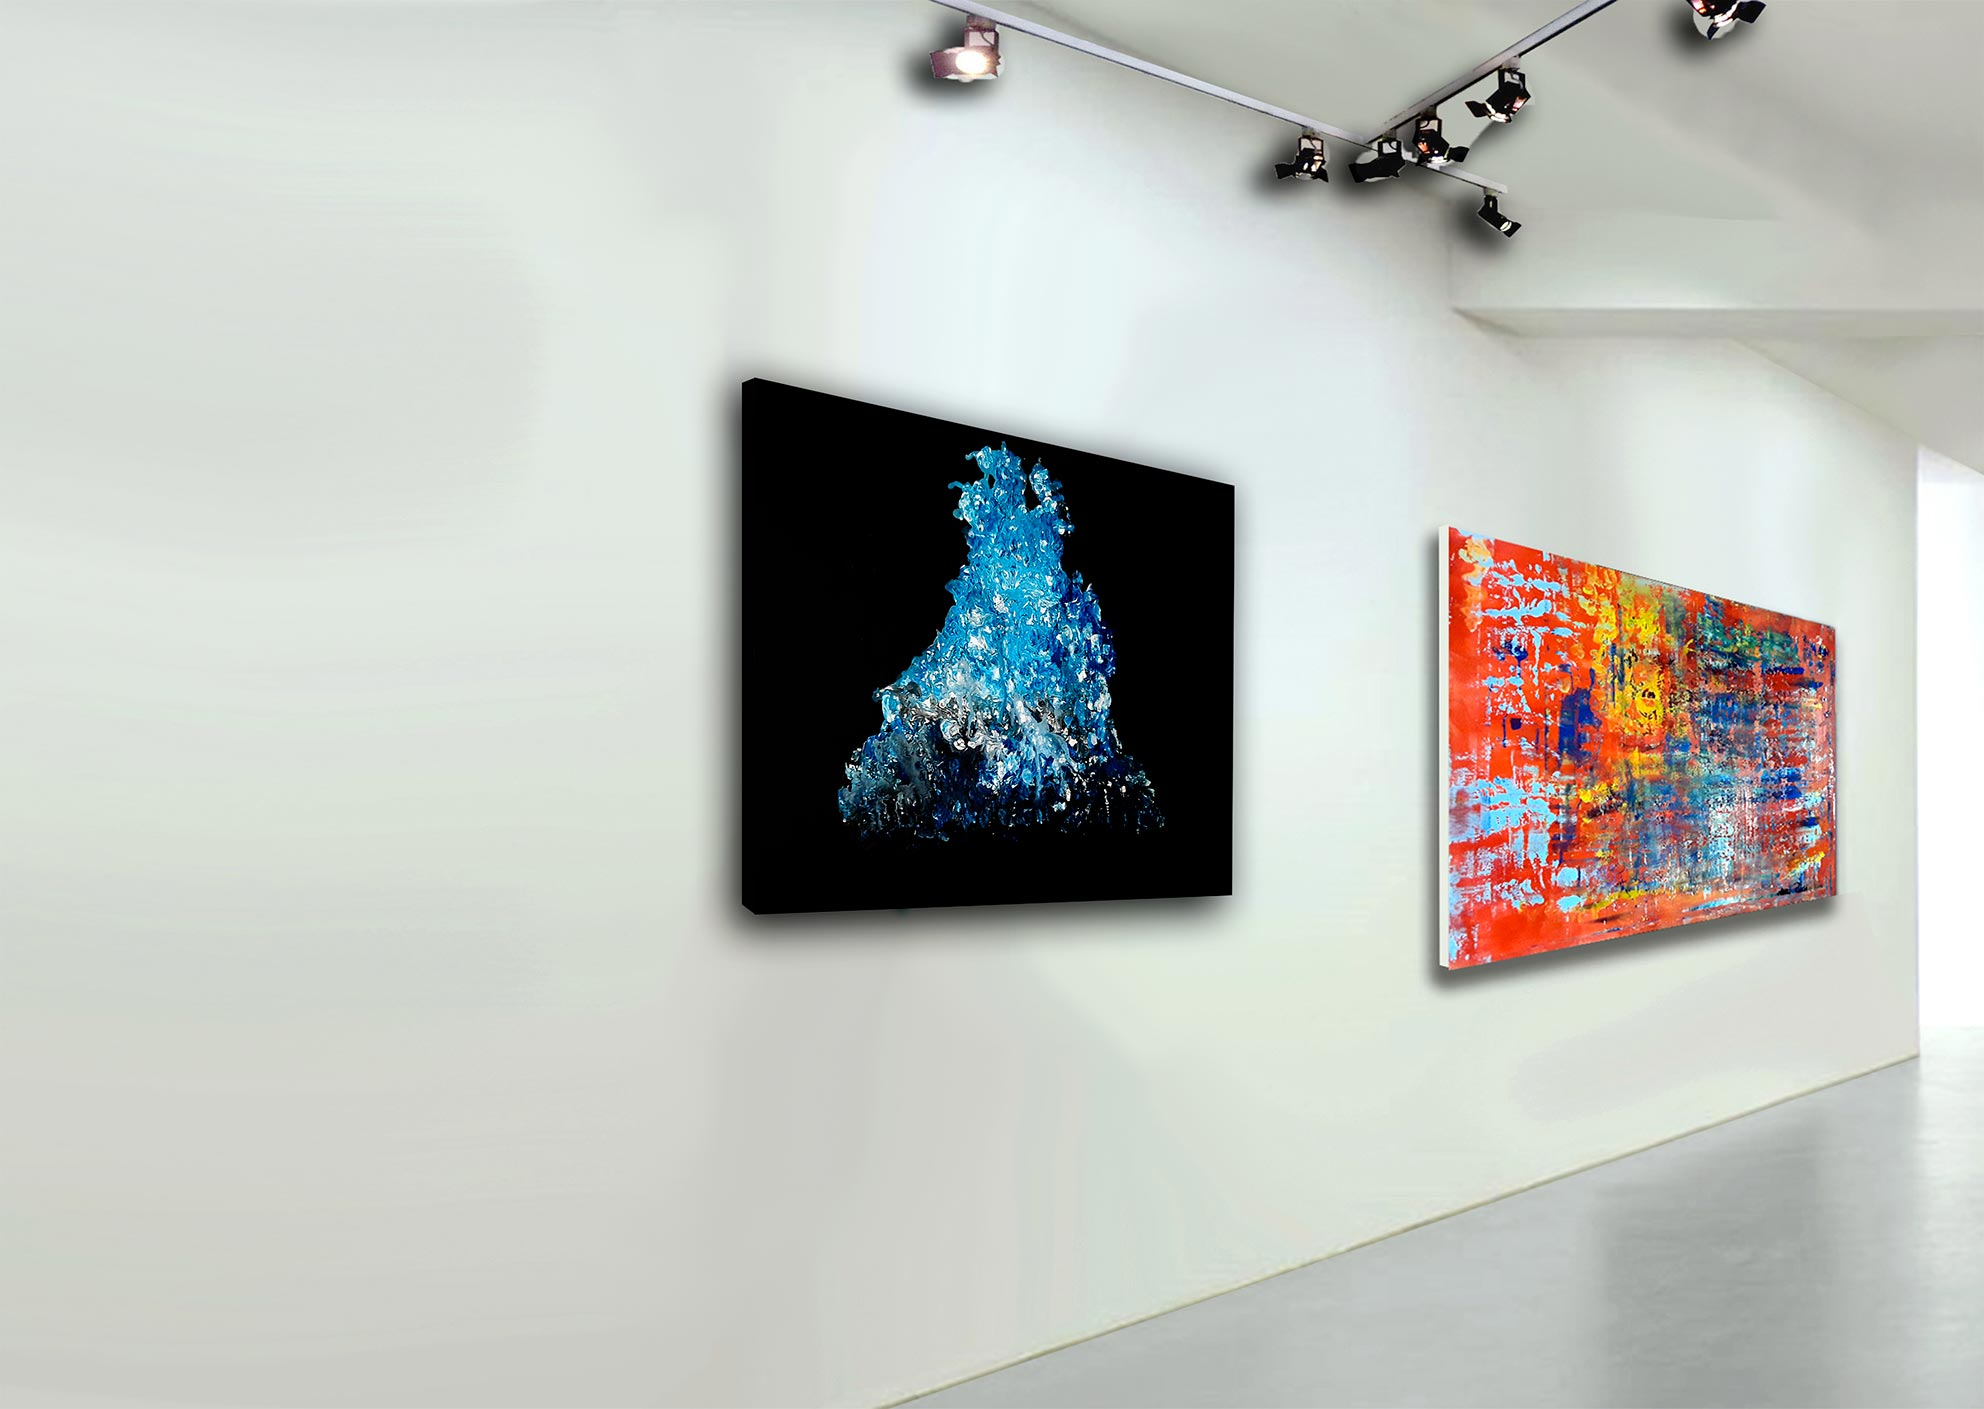 The-Blue-Thing-Patrick-Joosten-2020-August-05th-in-situation